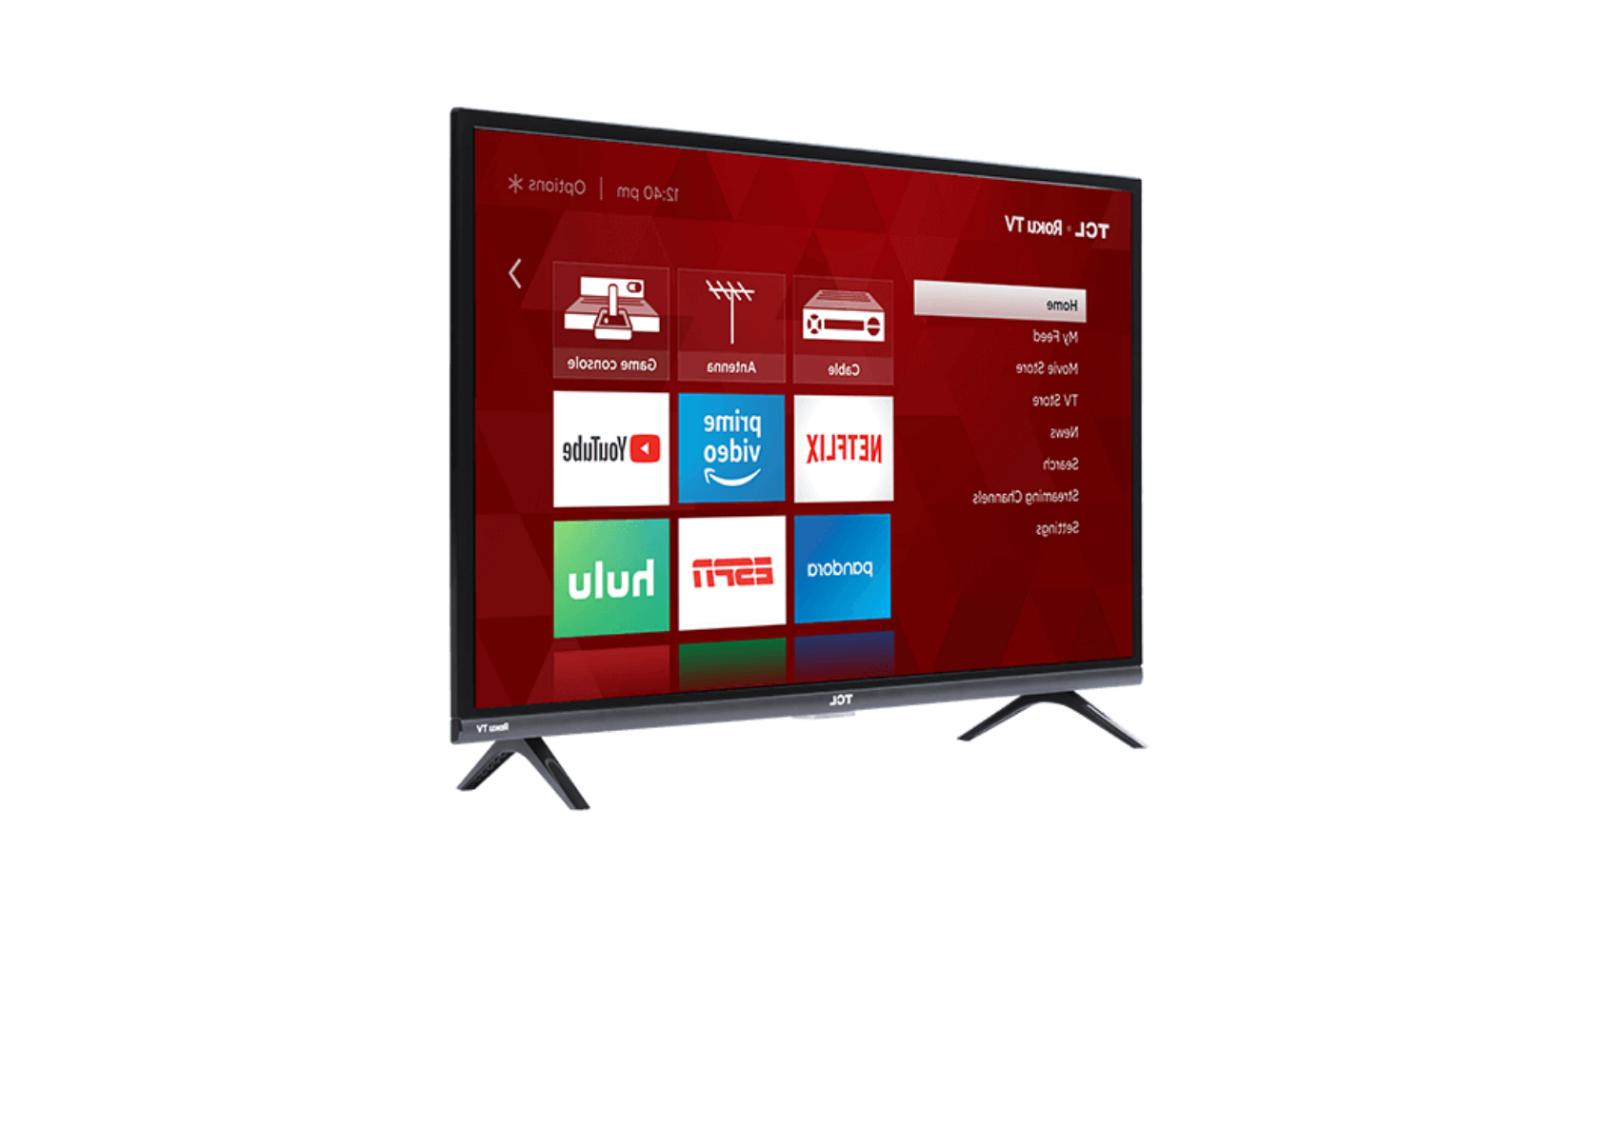 TCL 32S325 720p 60Hz HDTV with 3 HDMI NEW